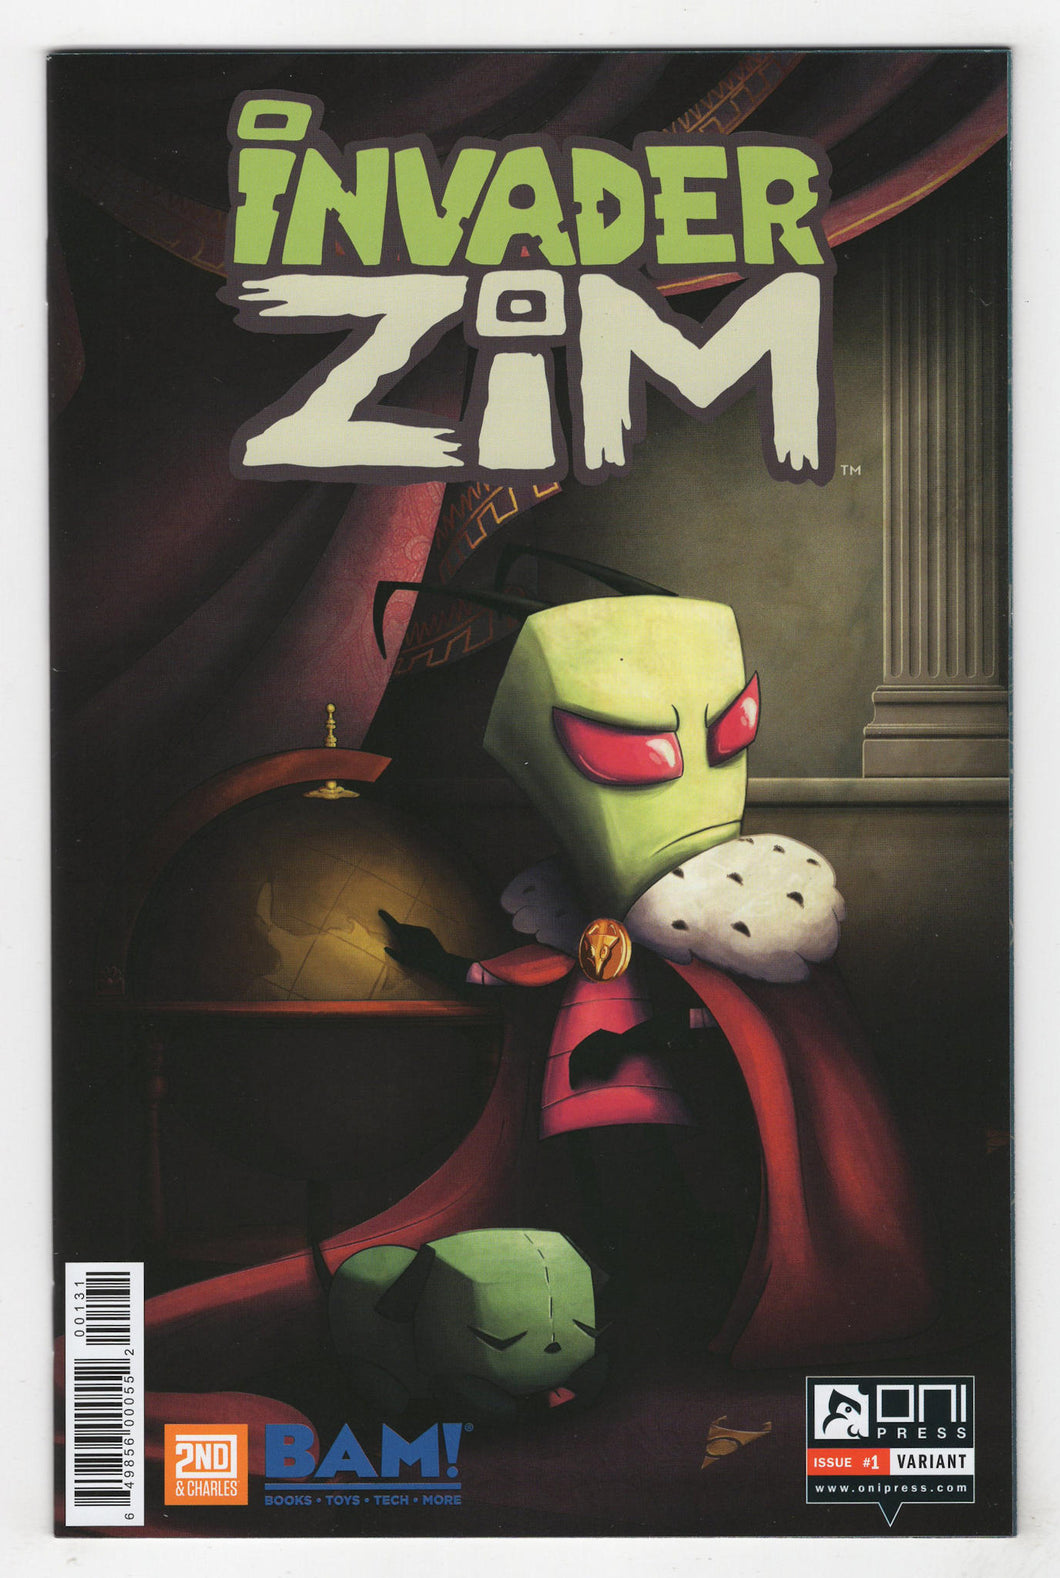 Invader Zim #1 Books a Million Variant Cover Front